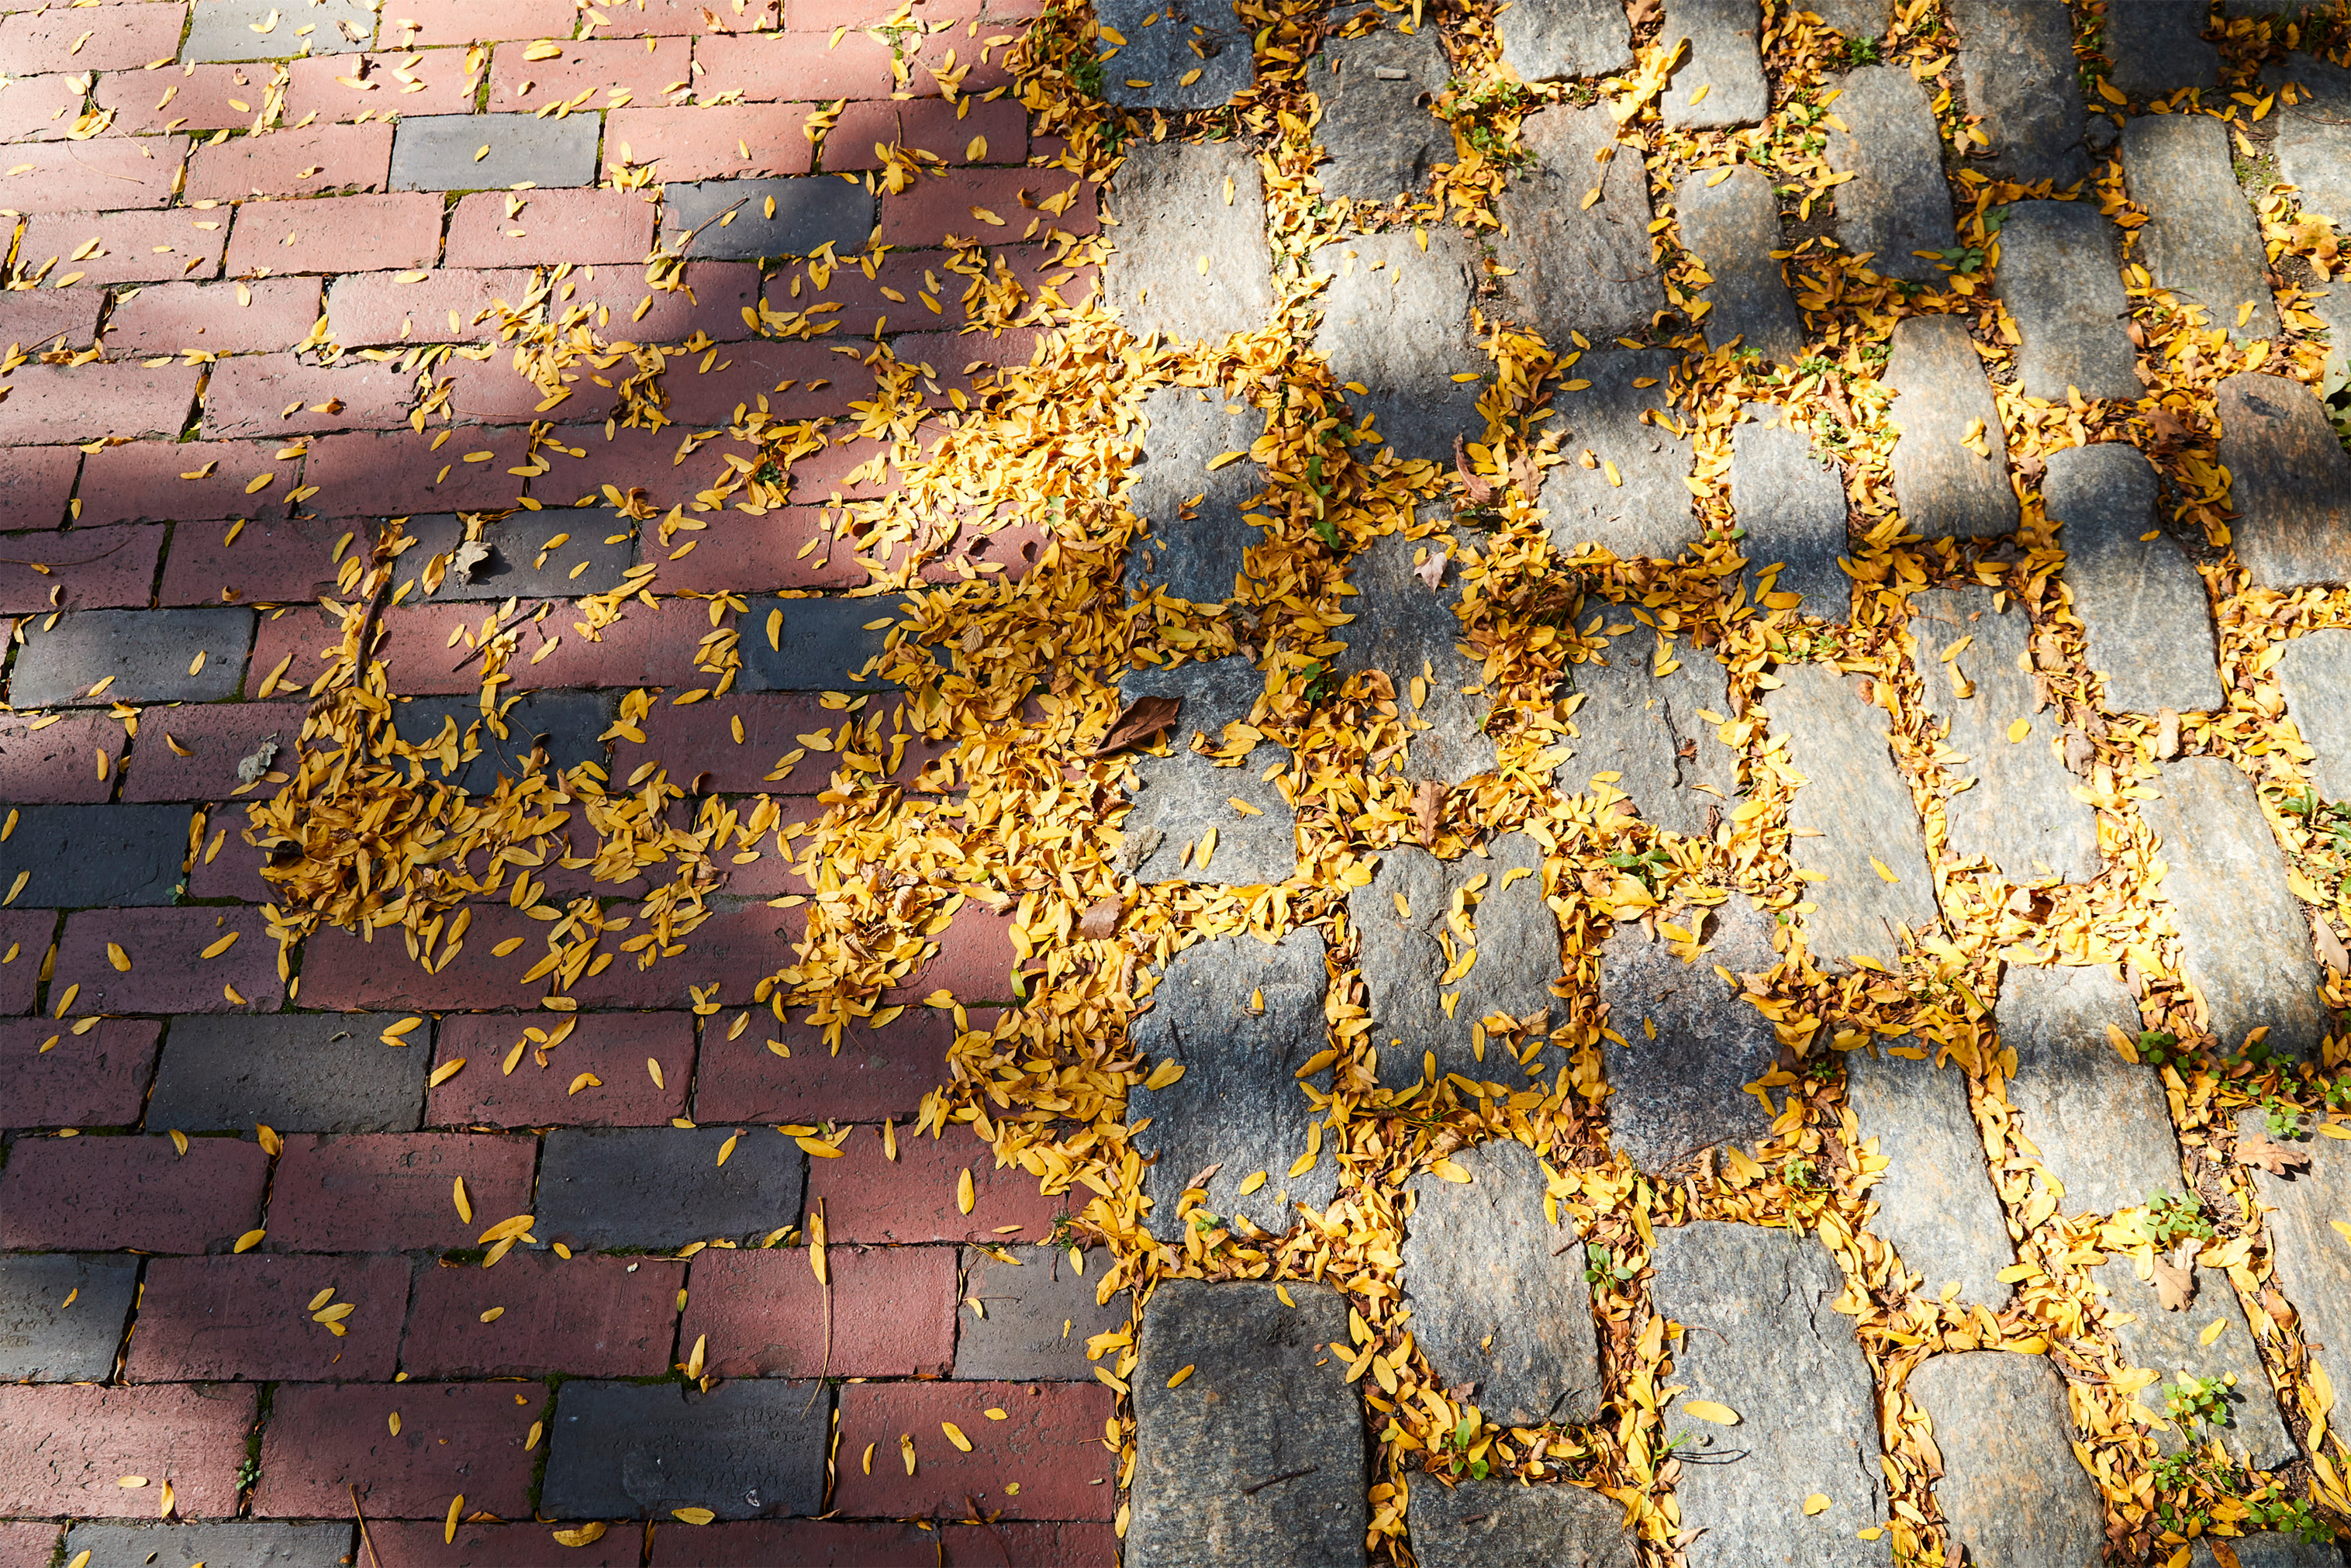 Red brick and grey stones with gold leaves strewn about.